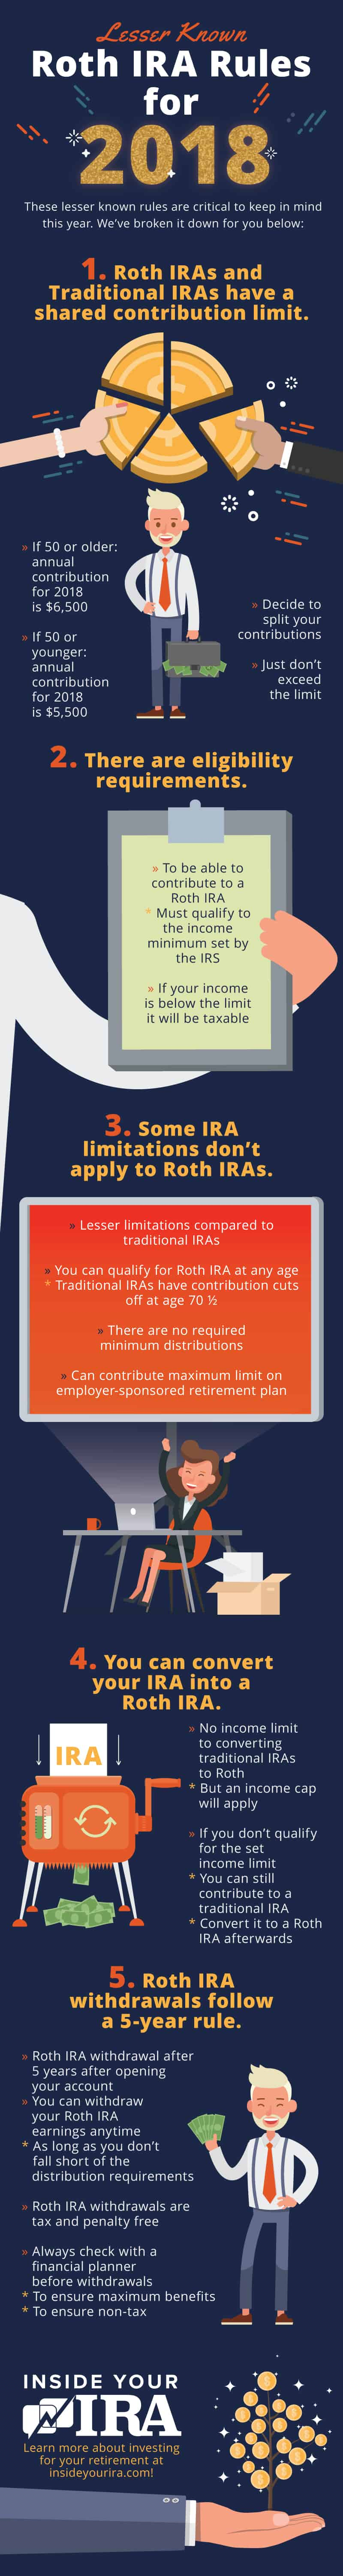 Infographic | Roth IRA Rules You Most Likely Didn't Know Inside Your IRA